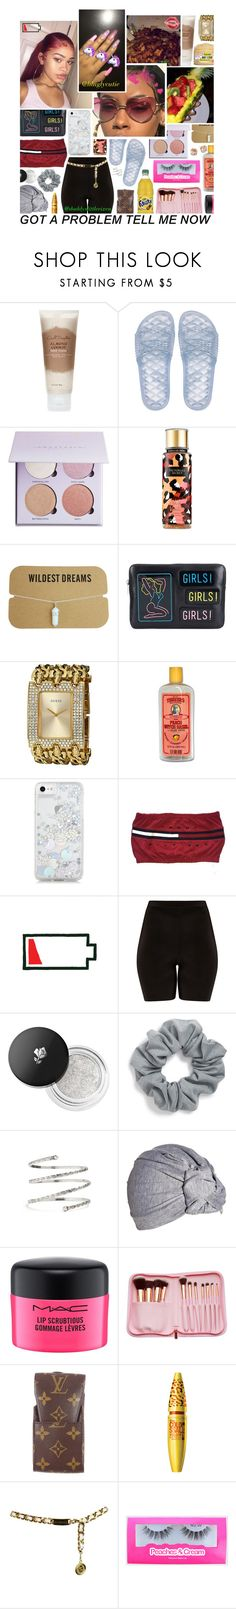 """""""I'll be with you from dusk til dawn"""" by liluglycutie ❤ liked on Polyvore featuring Carol's Daughter, Anastasia Beverly Hills, Victoria's Secret, Yazbukey, GUESS, Alöe, GET LOST, Skinnydip, Lancôme and Natasha"""